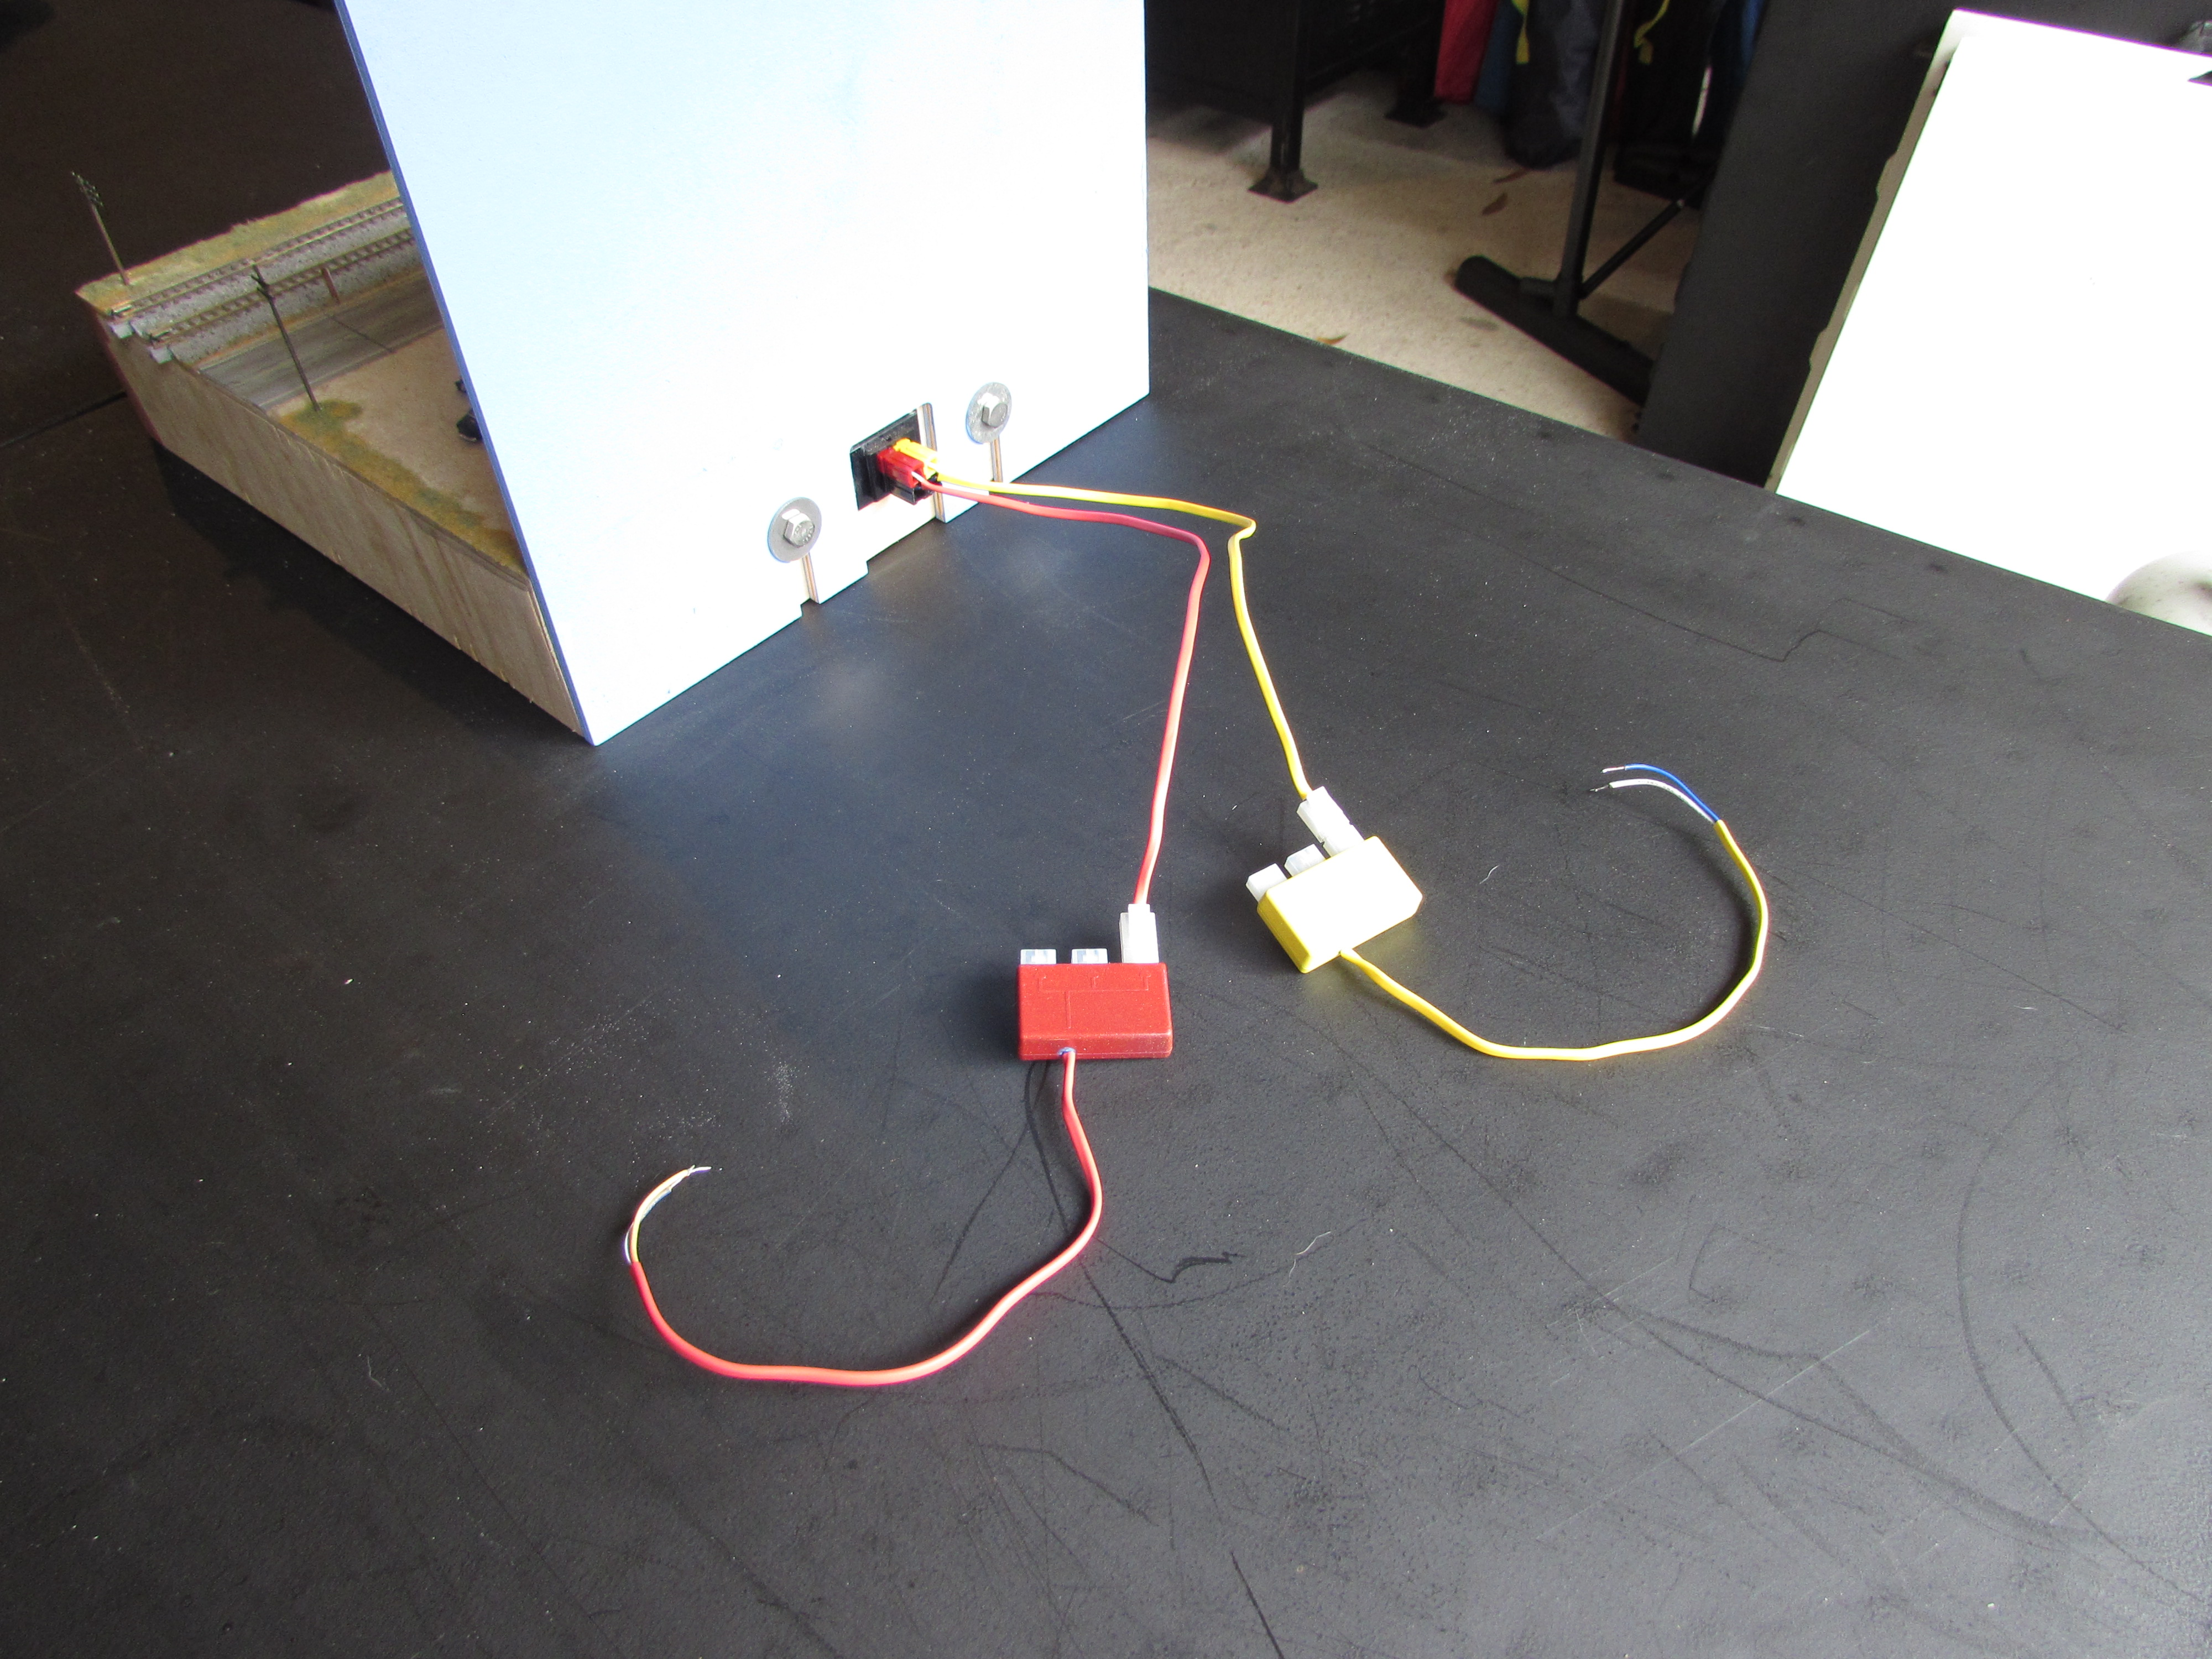 Swarmtrak Module Wiring Practices Anderson Power Poles T Trak Wiki Electrical Inside Walls We Store These Pigtails With Each Powered By The Use Of Adhesive Clips On Wall This Keeps Pigtail Out Sight